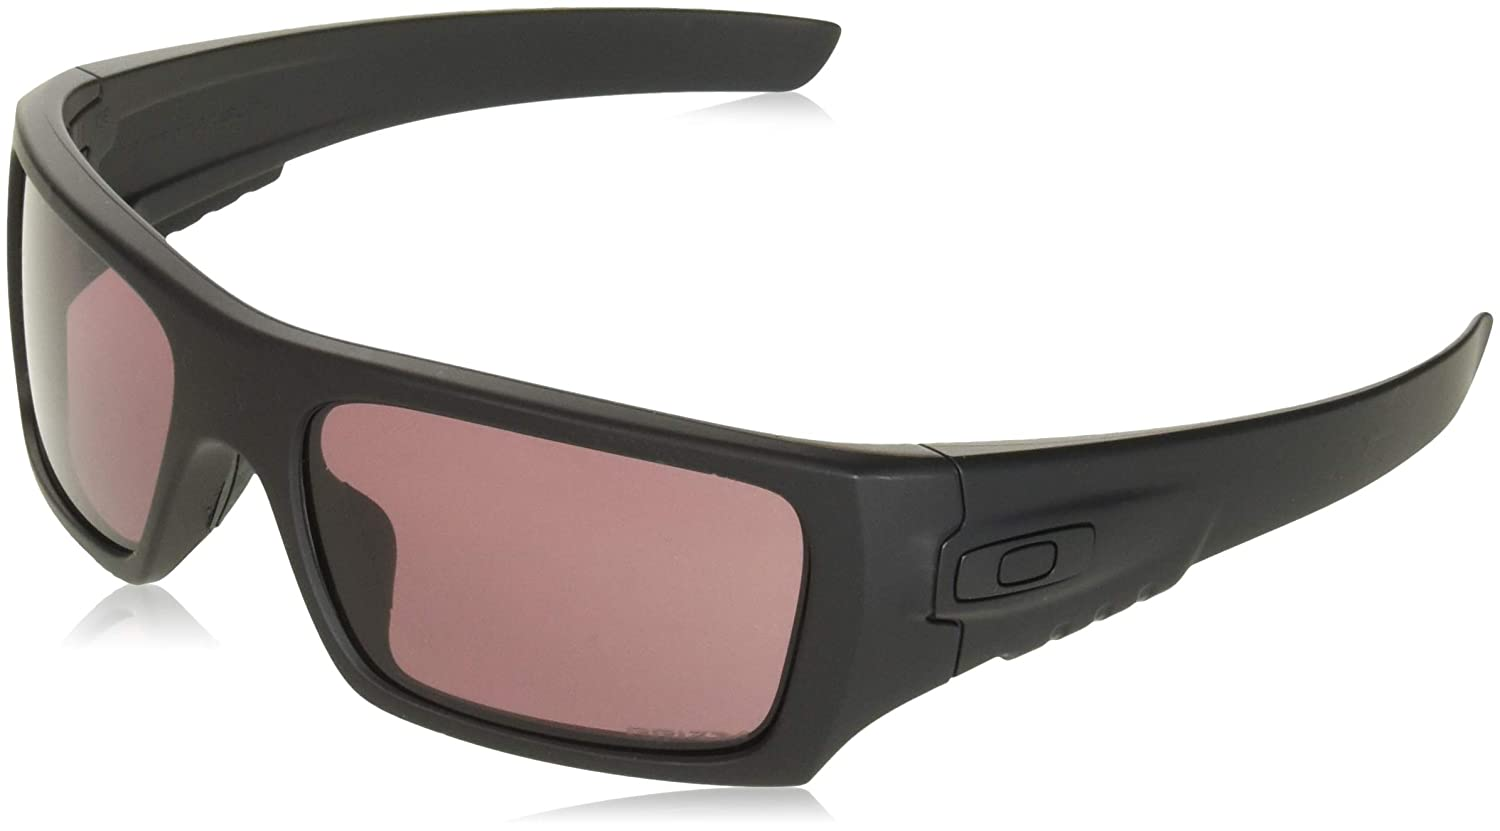 c236cefe51a09 Amazon.com  Oakley Men s Det Cord Rectangular Sunglasses